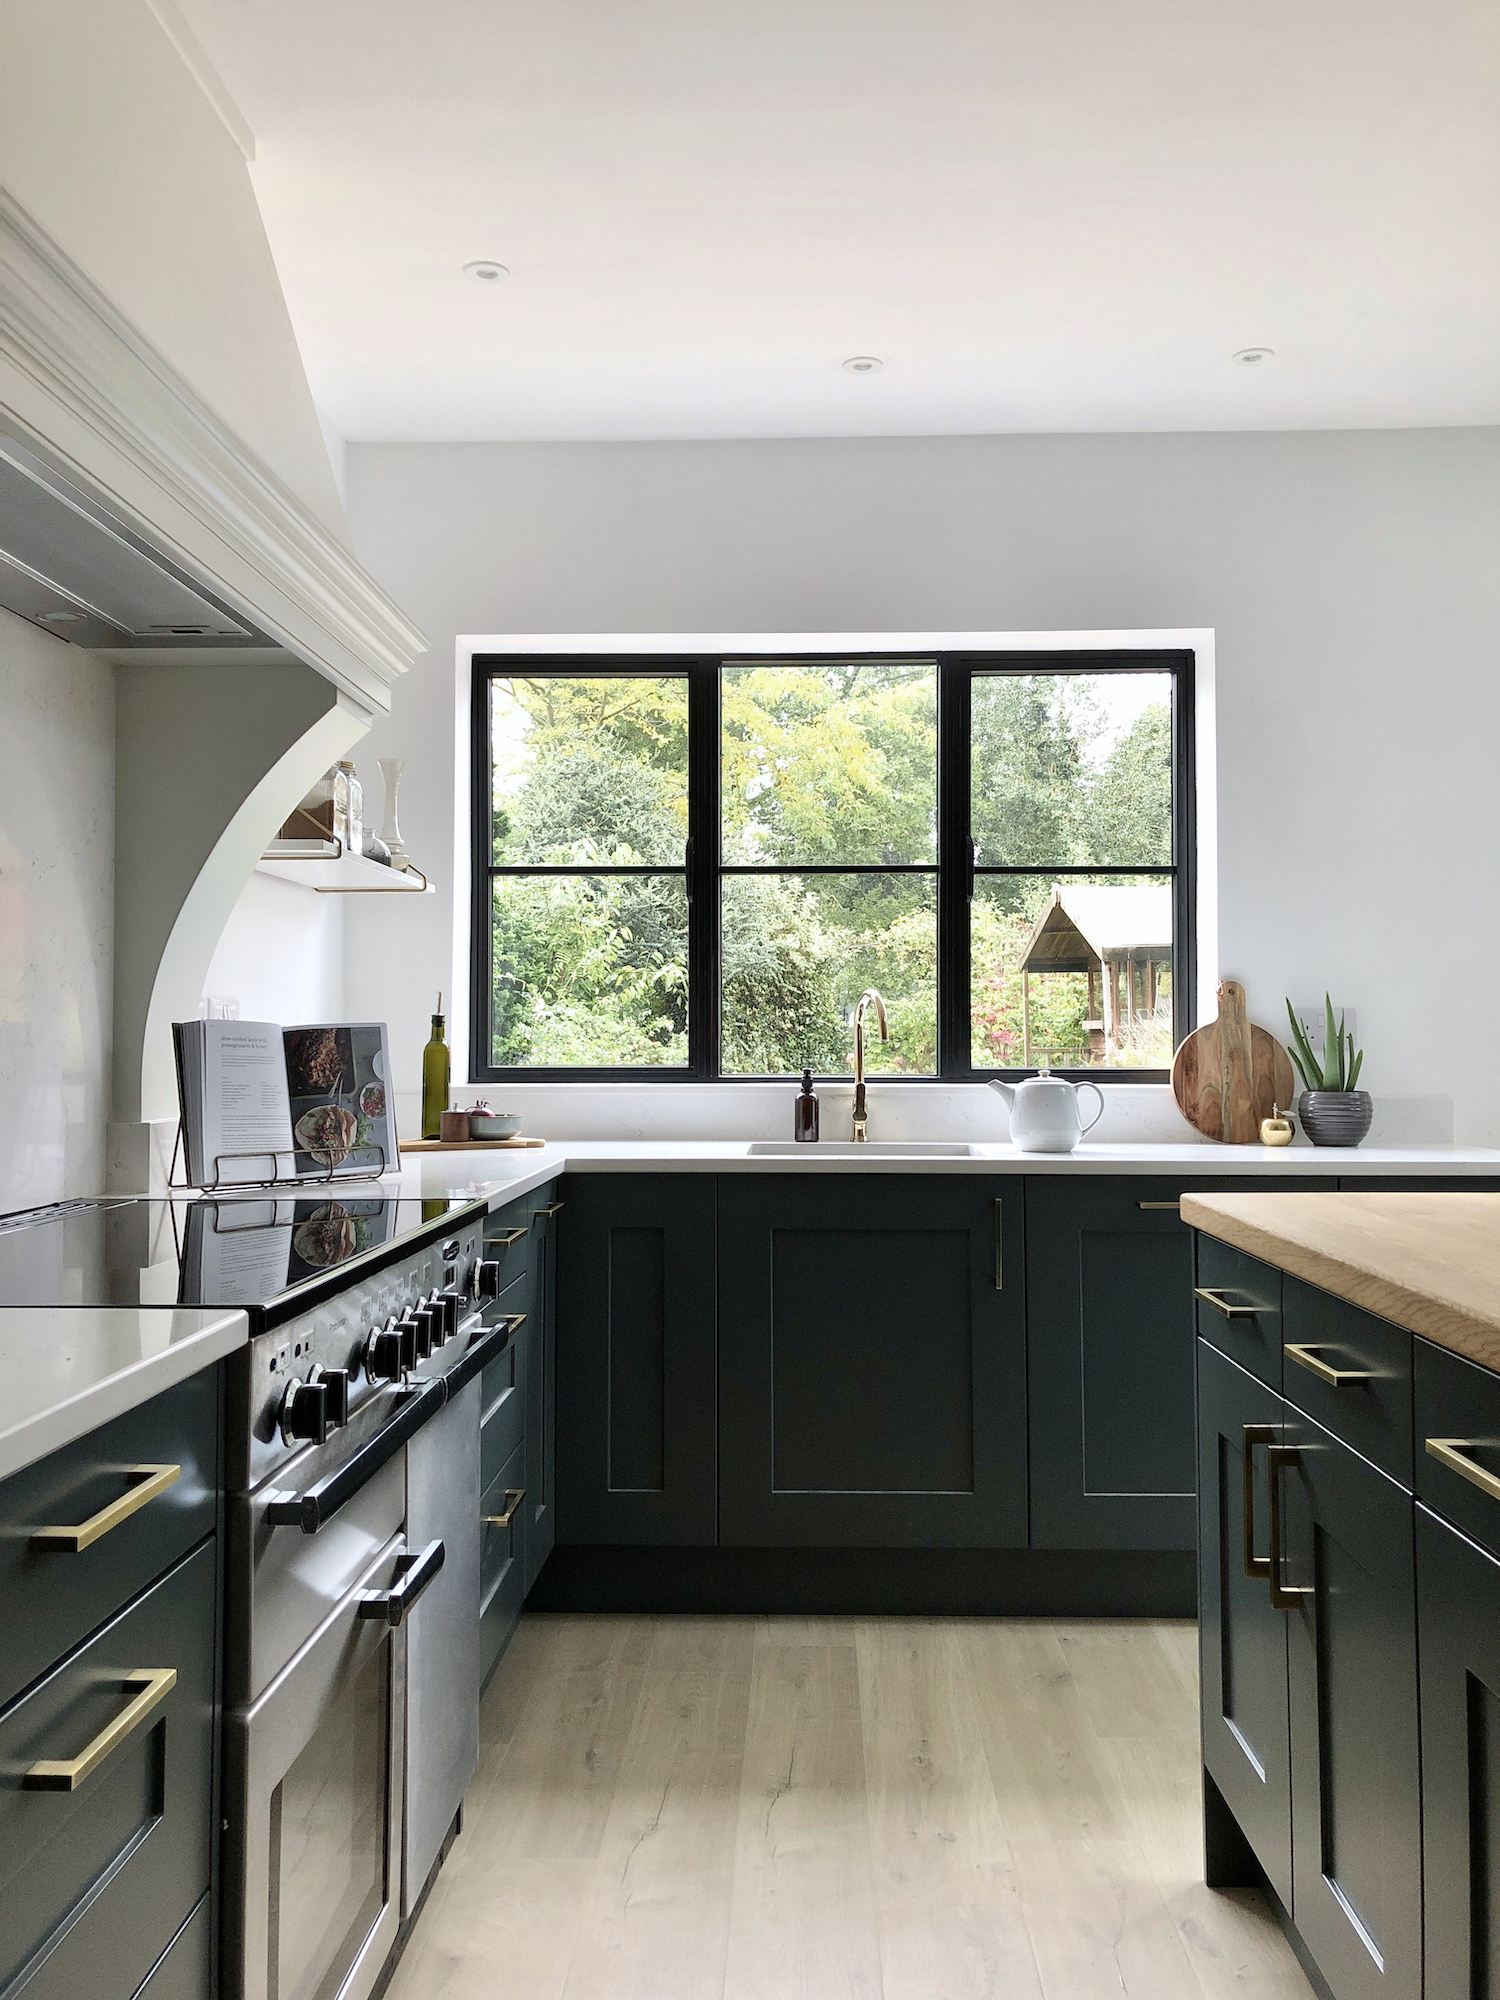 First Sense Interiors - Dark Blue Green Shaker kitchen with quartz and oak worktops and a custom extractor chimney hood